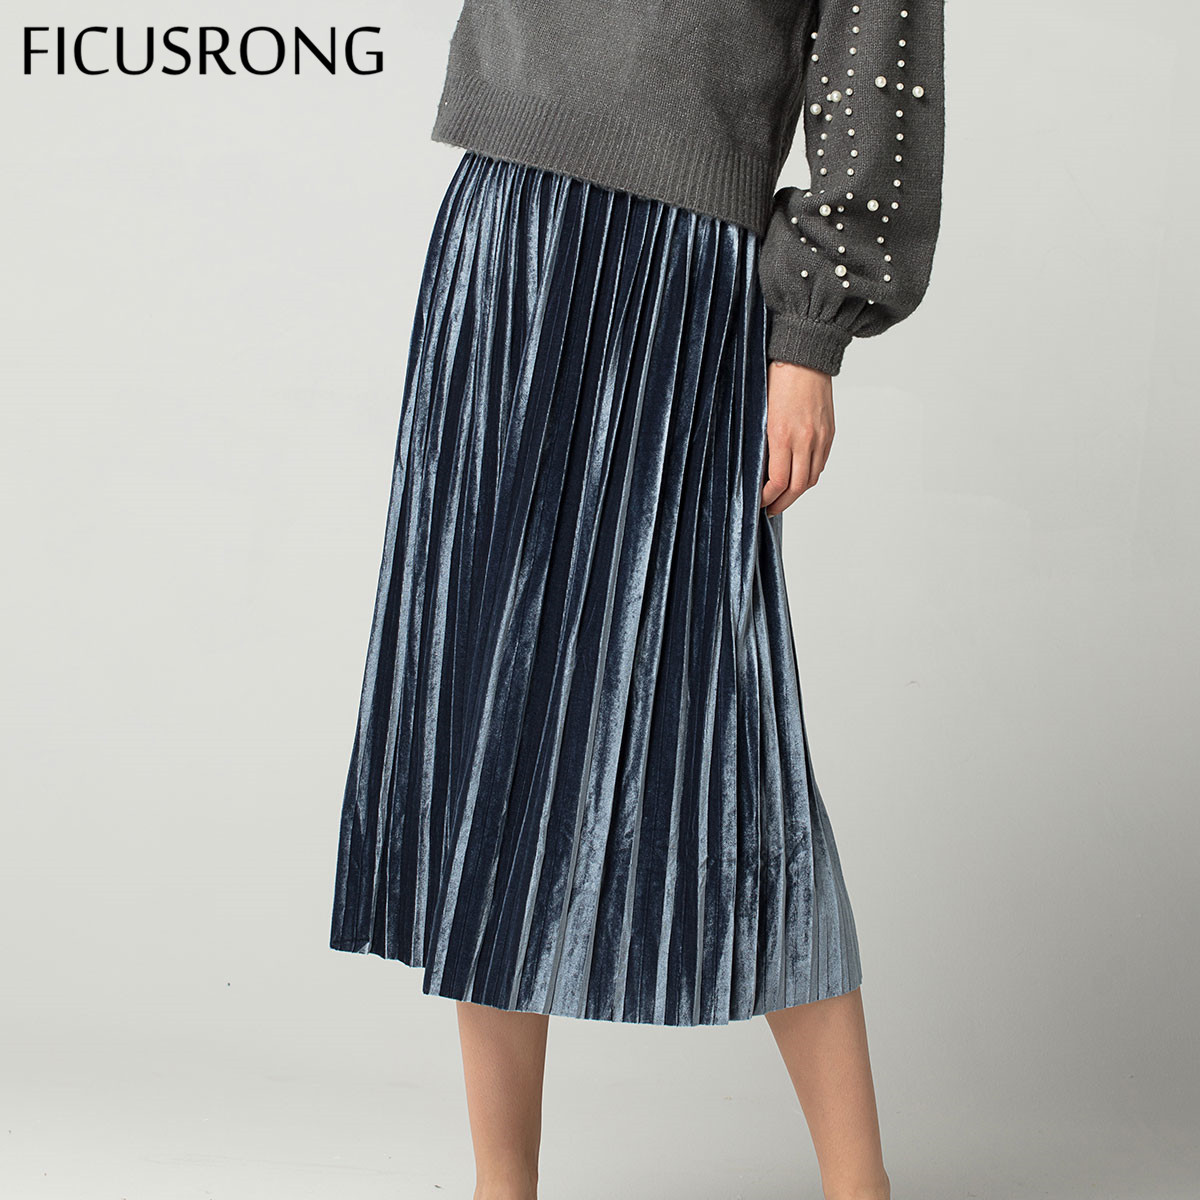 New 7 Colors Autumn Winter High Waisted Skinny Female Velvet Skirt Pleated Skirts Elegant Plus Size Women Skirt FICUSRONG